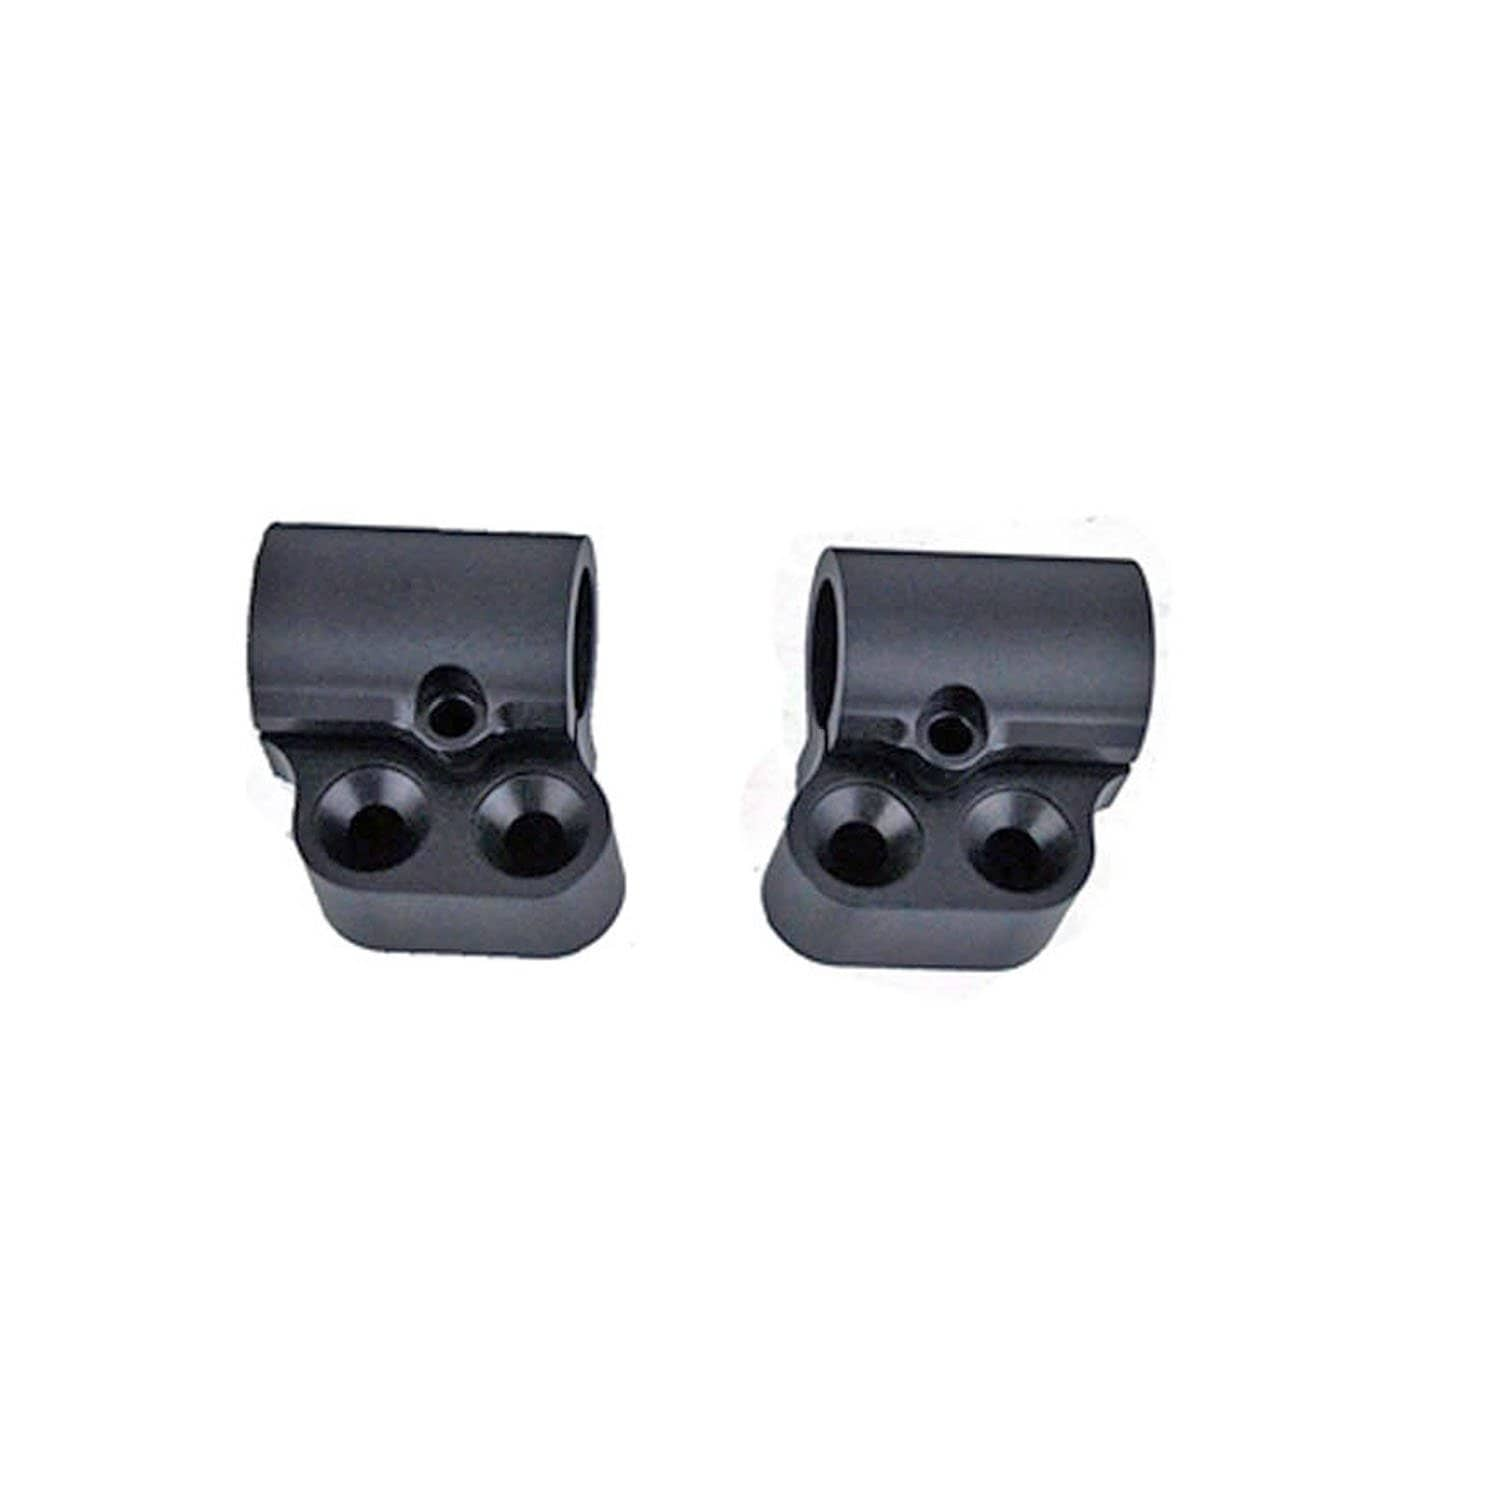 12-1590-10B Offset Clipon Riser Set - 1 inch - Woodcraft Technologies - Motorcycle Parts